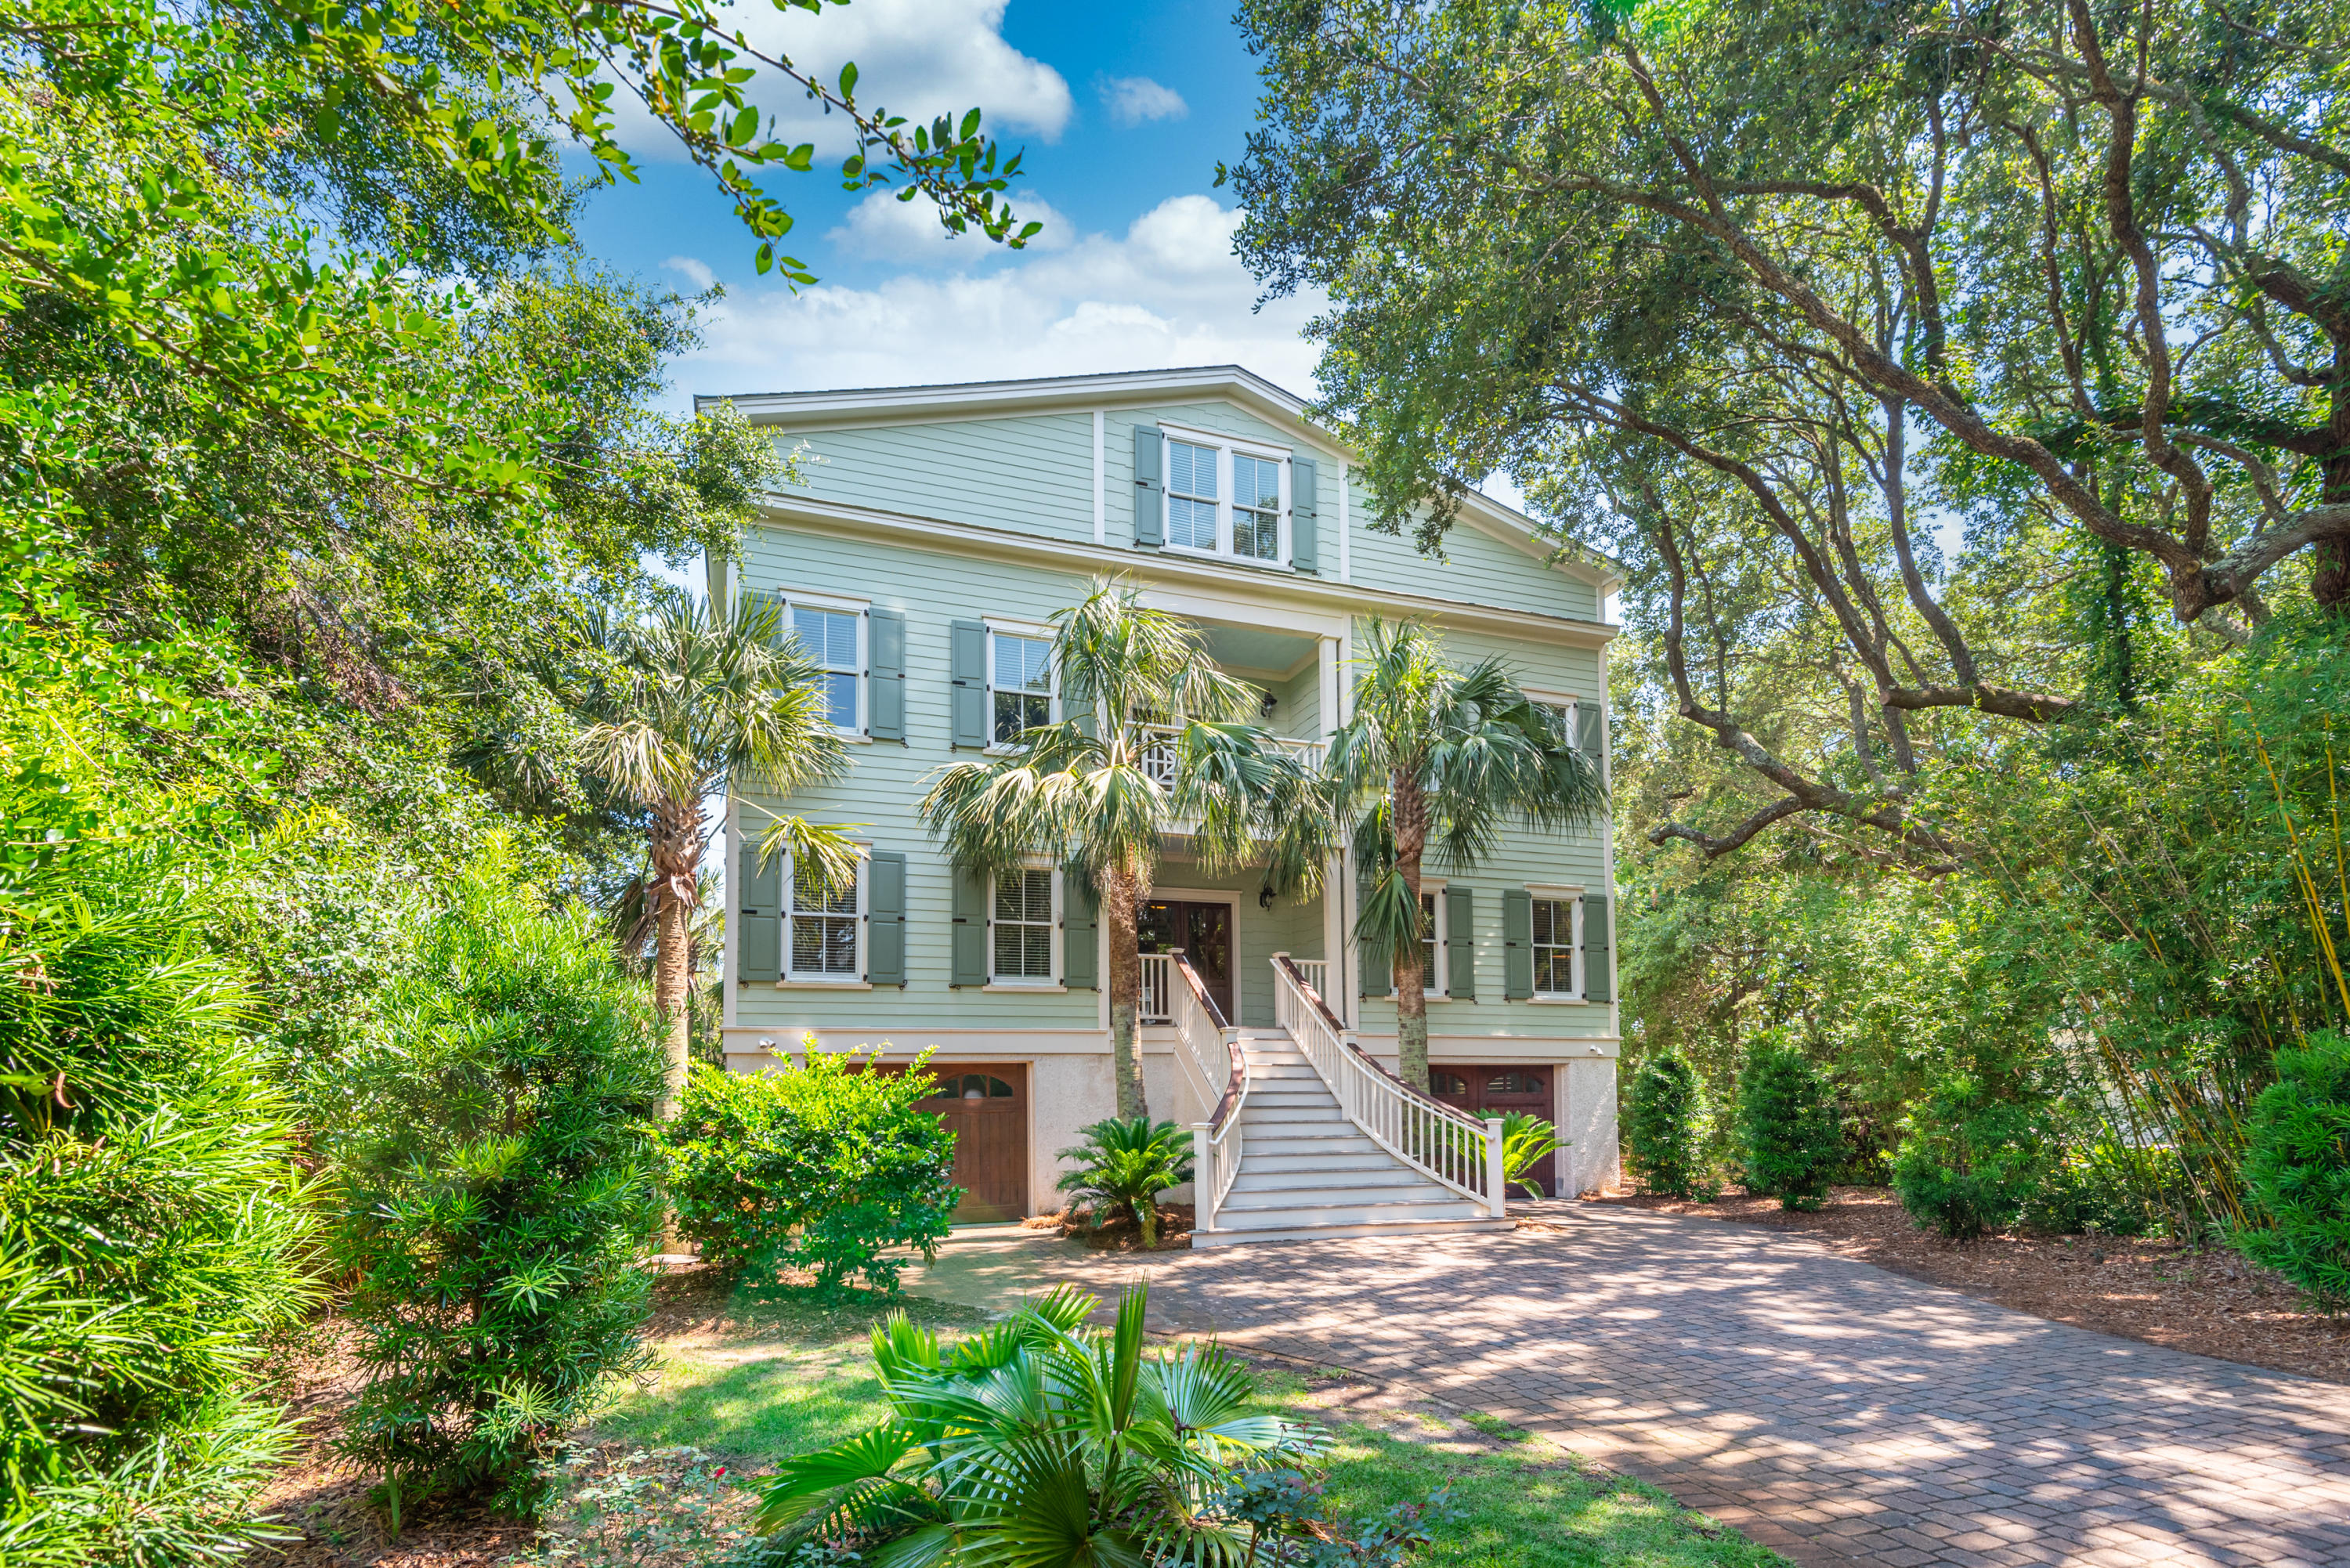 Wild Dunes Homes For Sale - 7 Abalone, Isle of Palms, SC - 19